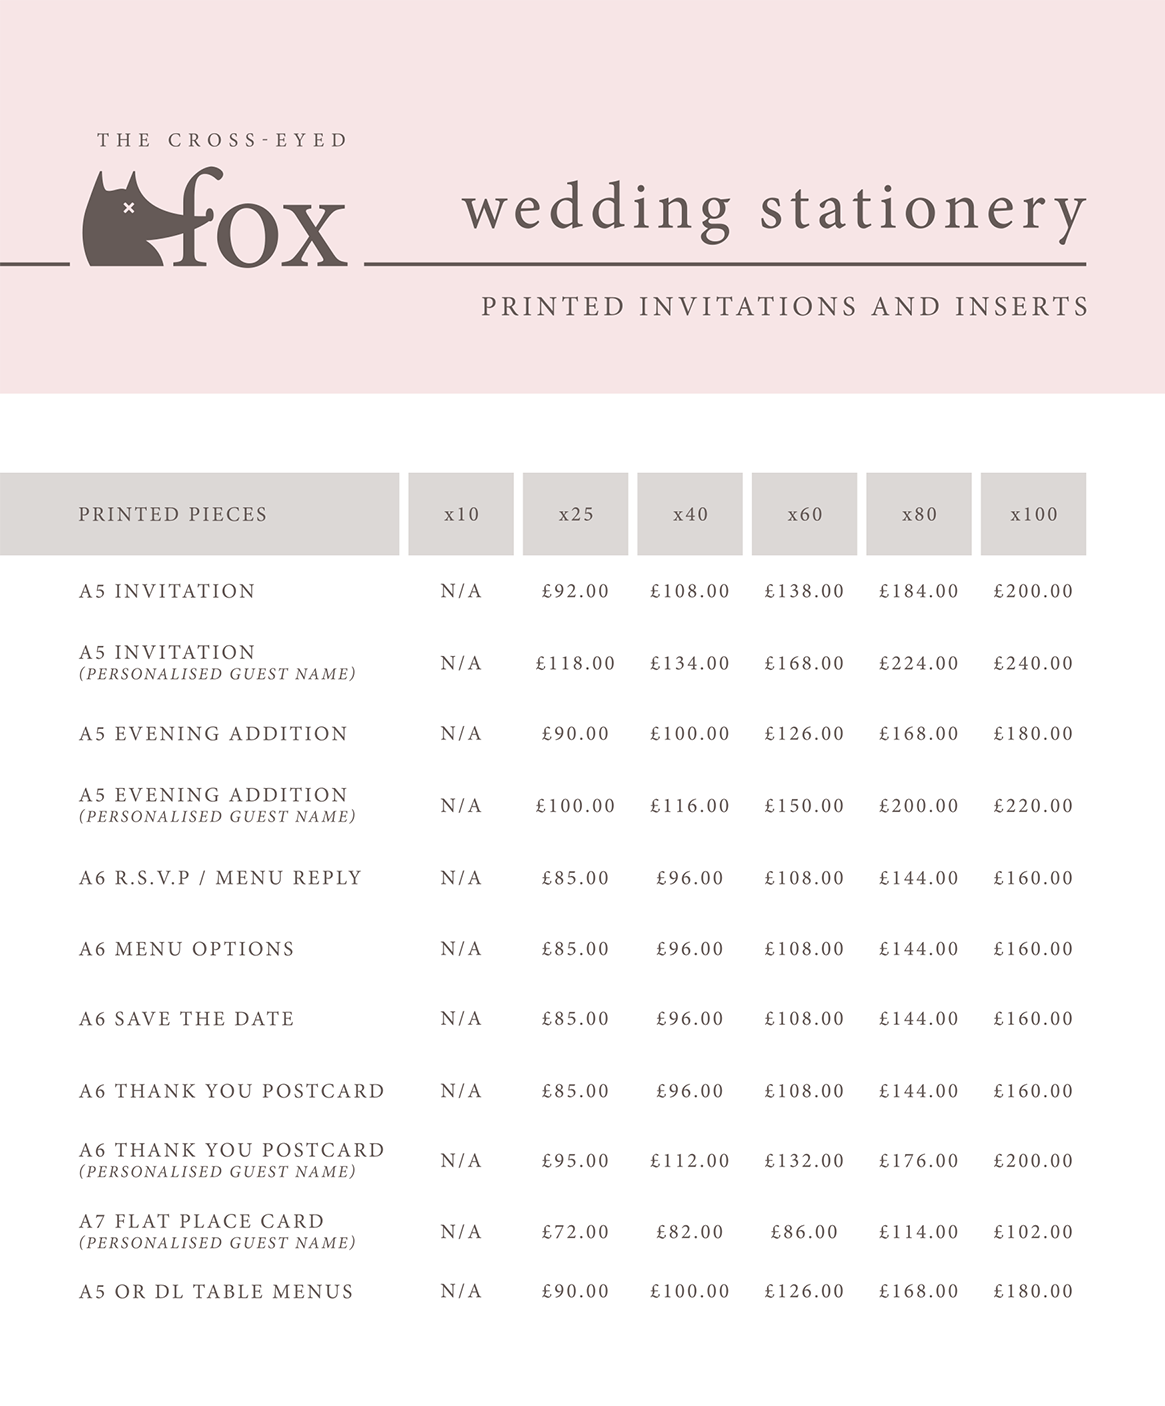 The Cross-Eyed Fox Wedding Invitation Price Guide 2017/2018